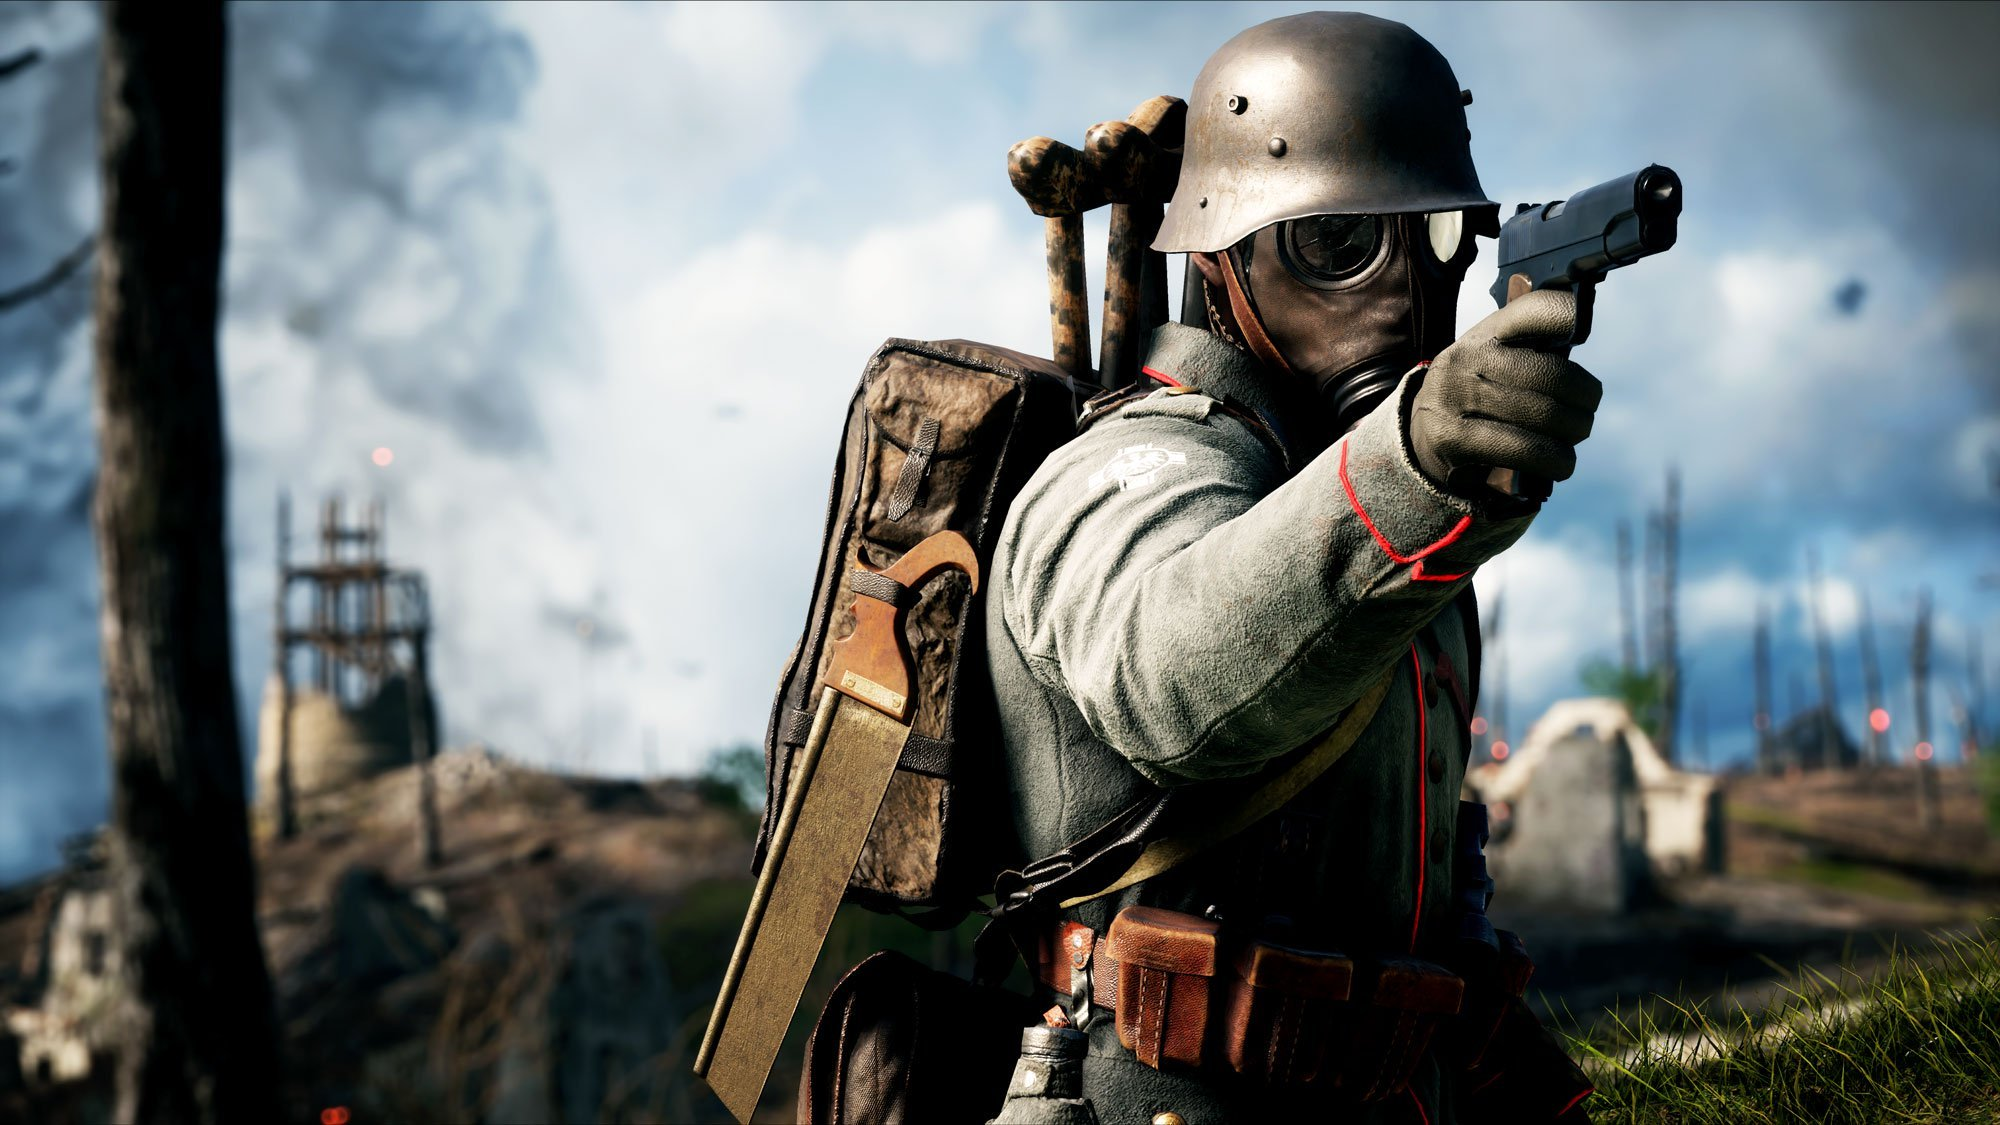 Battlefield V 5 Highly Compressed Crack + CD Key PC Game For Free Download